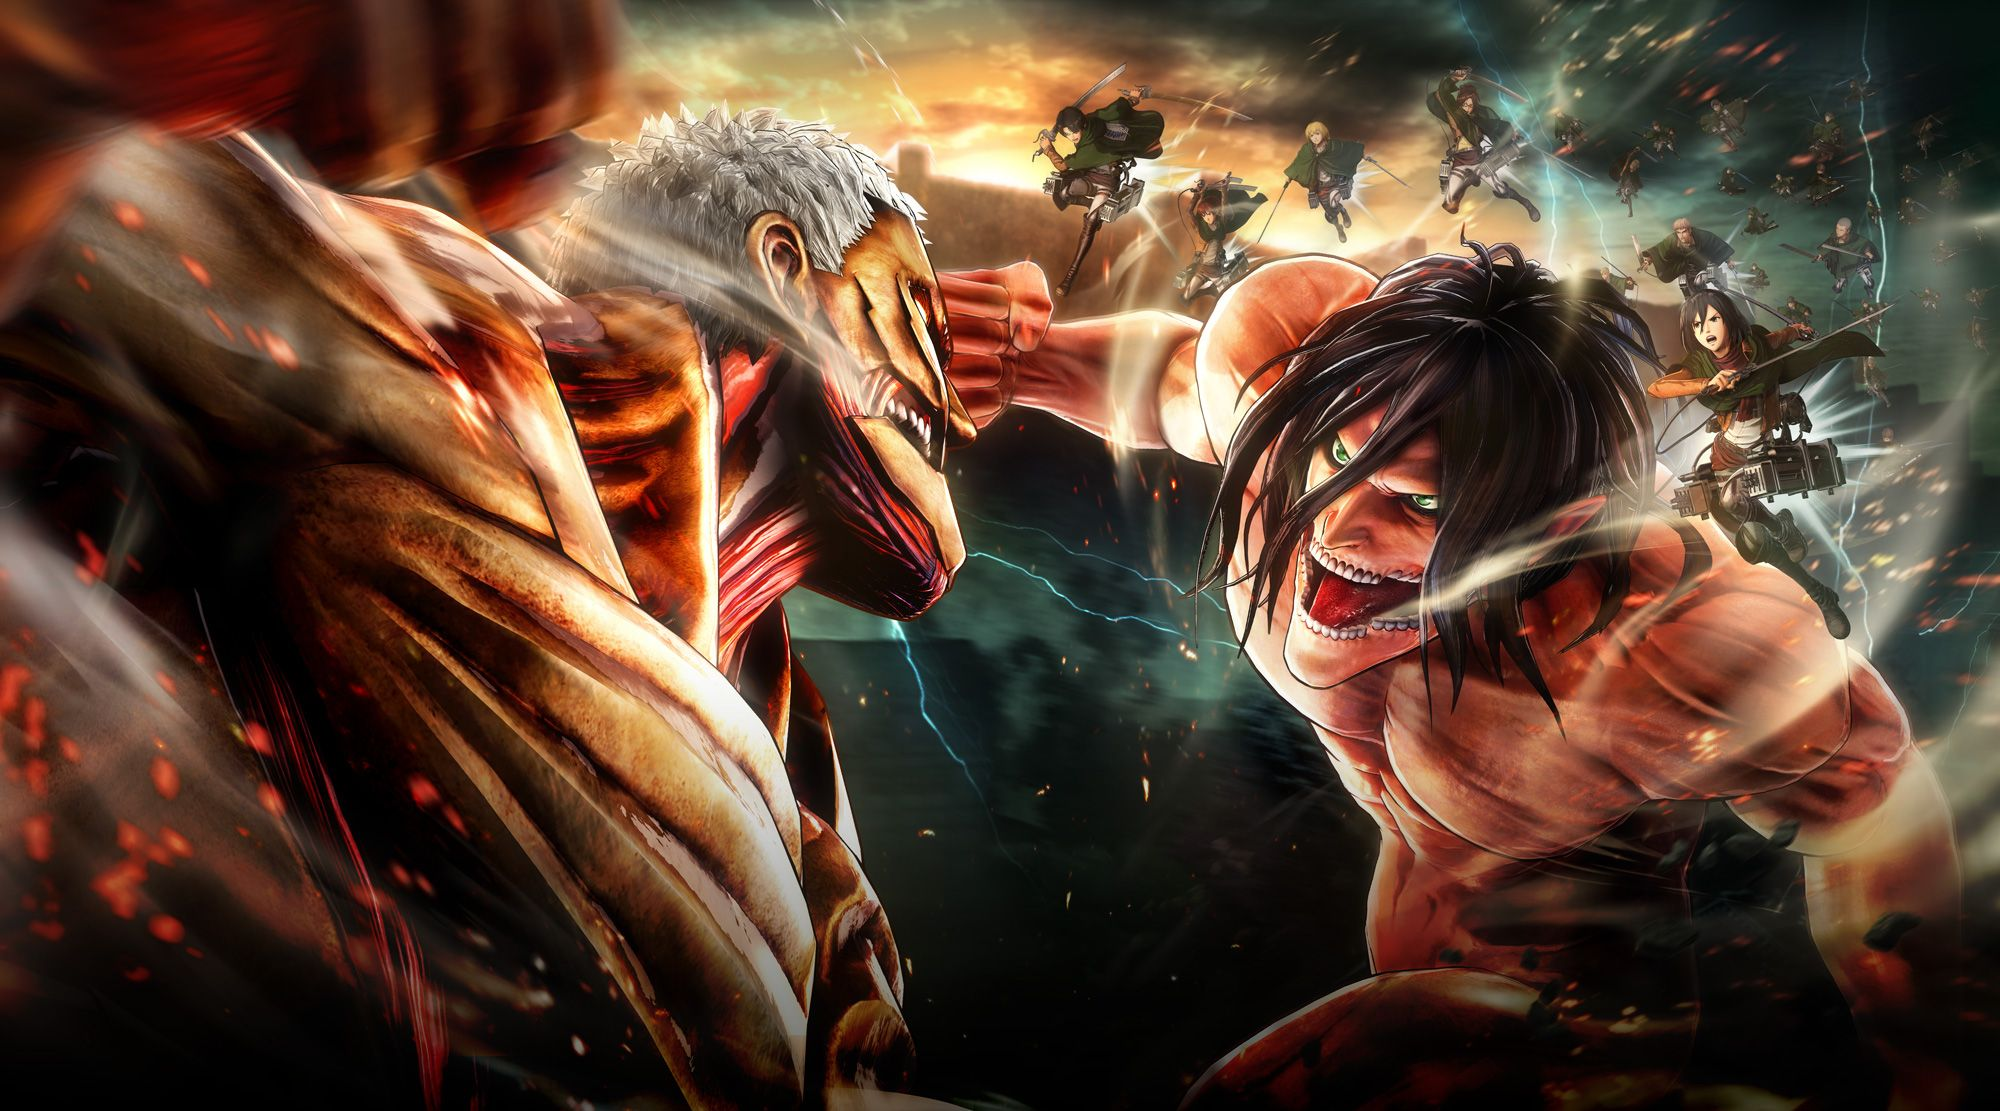 After the sinking of the titanic on april 15, 1912, the great ship slumbered on the floor of the atlantic oc. Eren Jaeger Vs Naruto - Down Naruto Amino : Eren jaeger ...